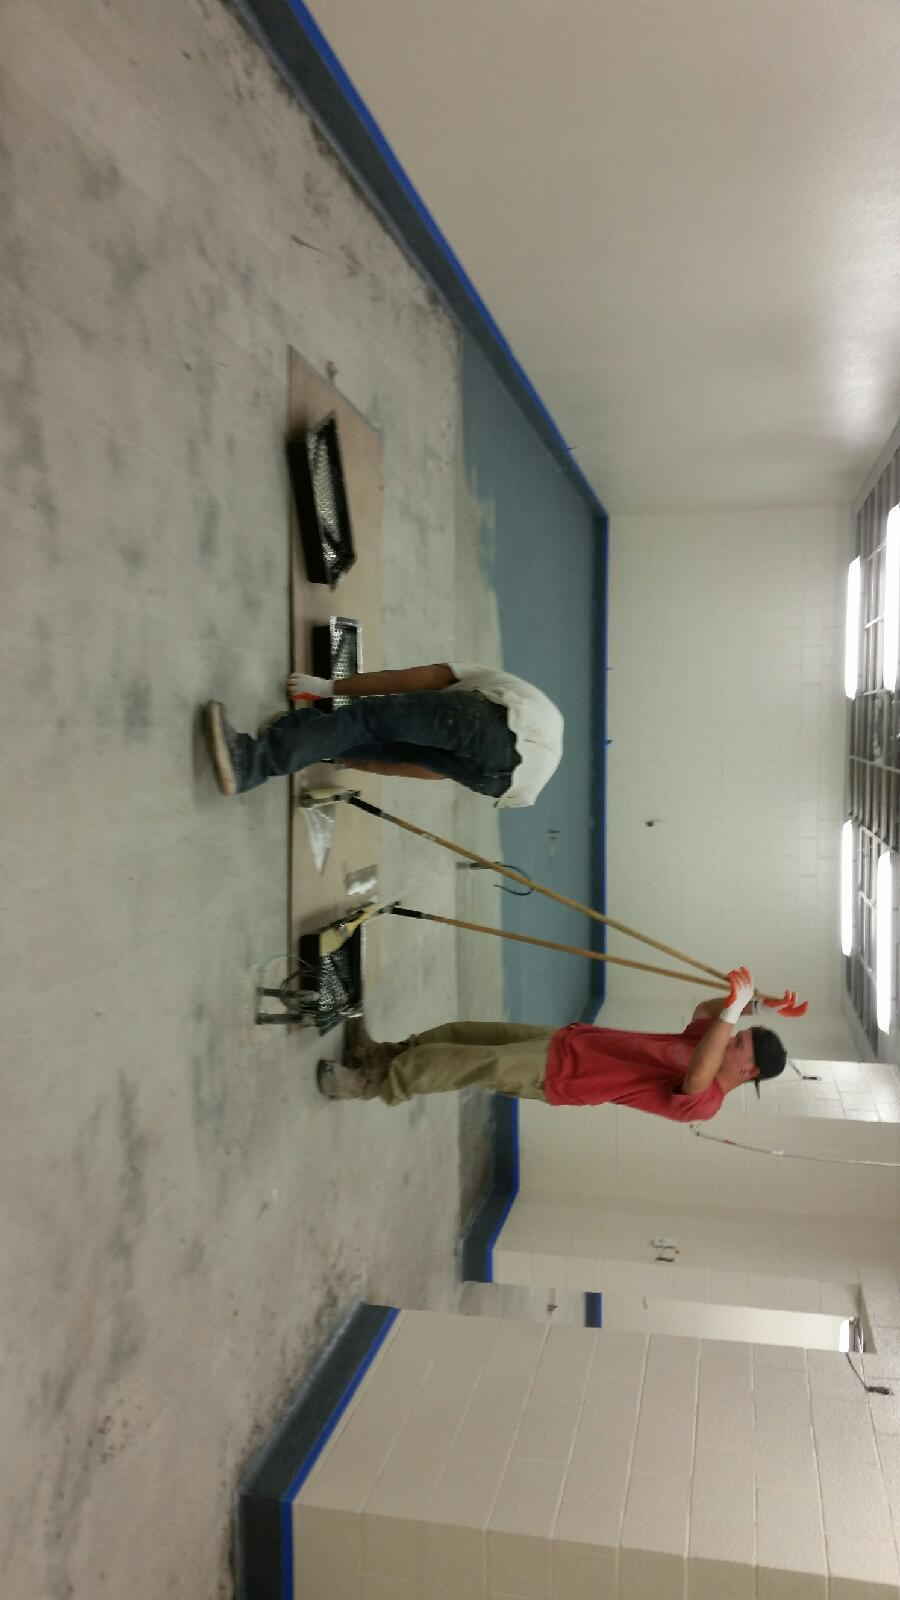 A picture installing an epoxy floor in a commercial kitchen